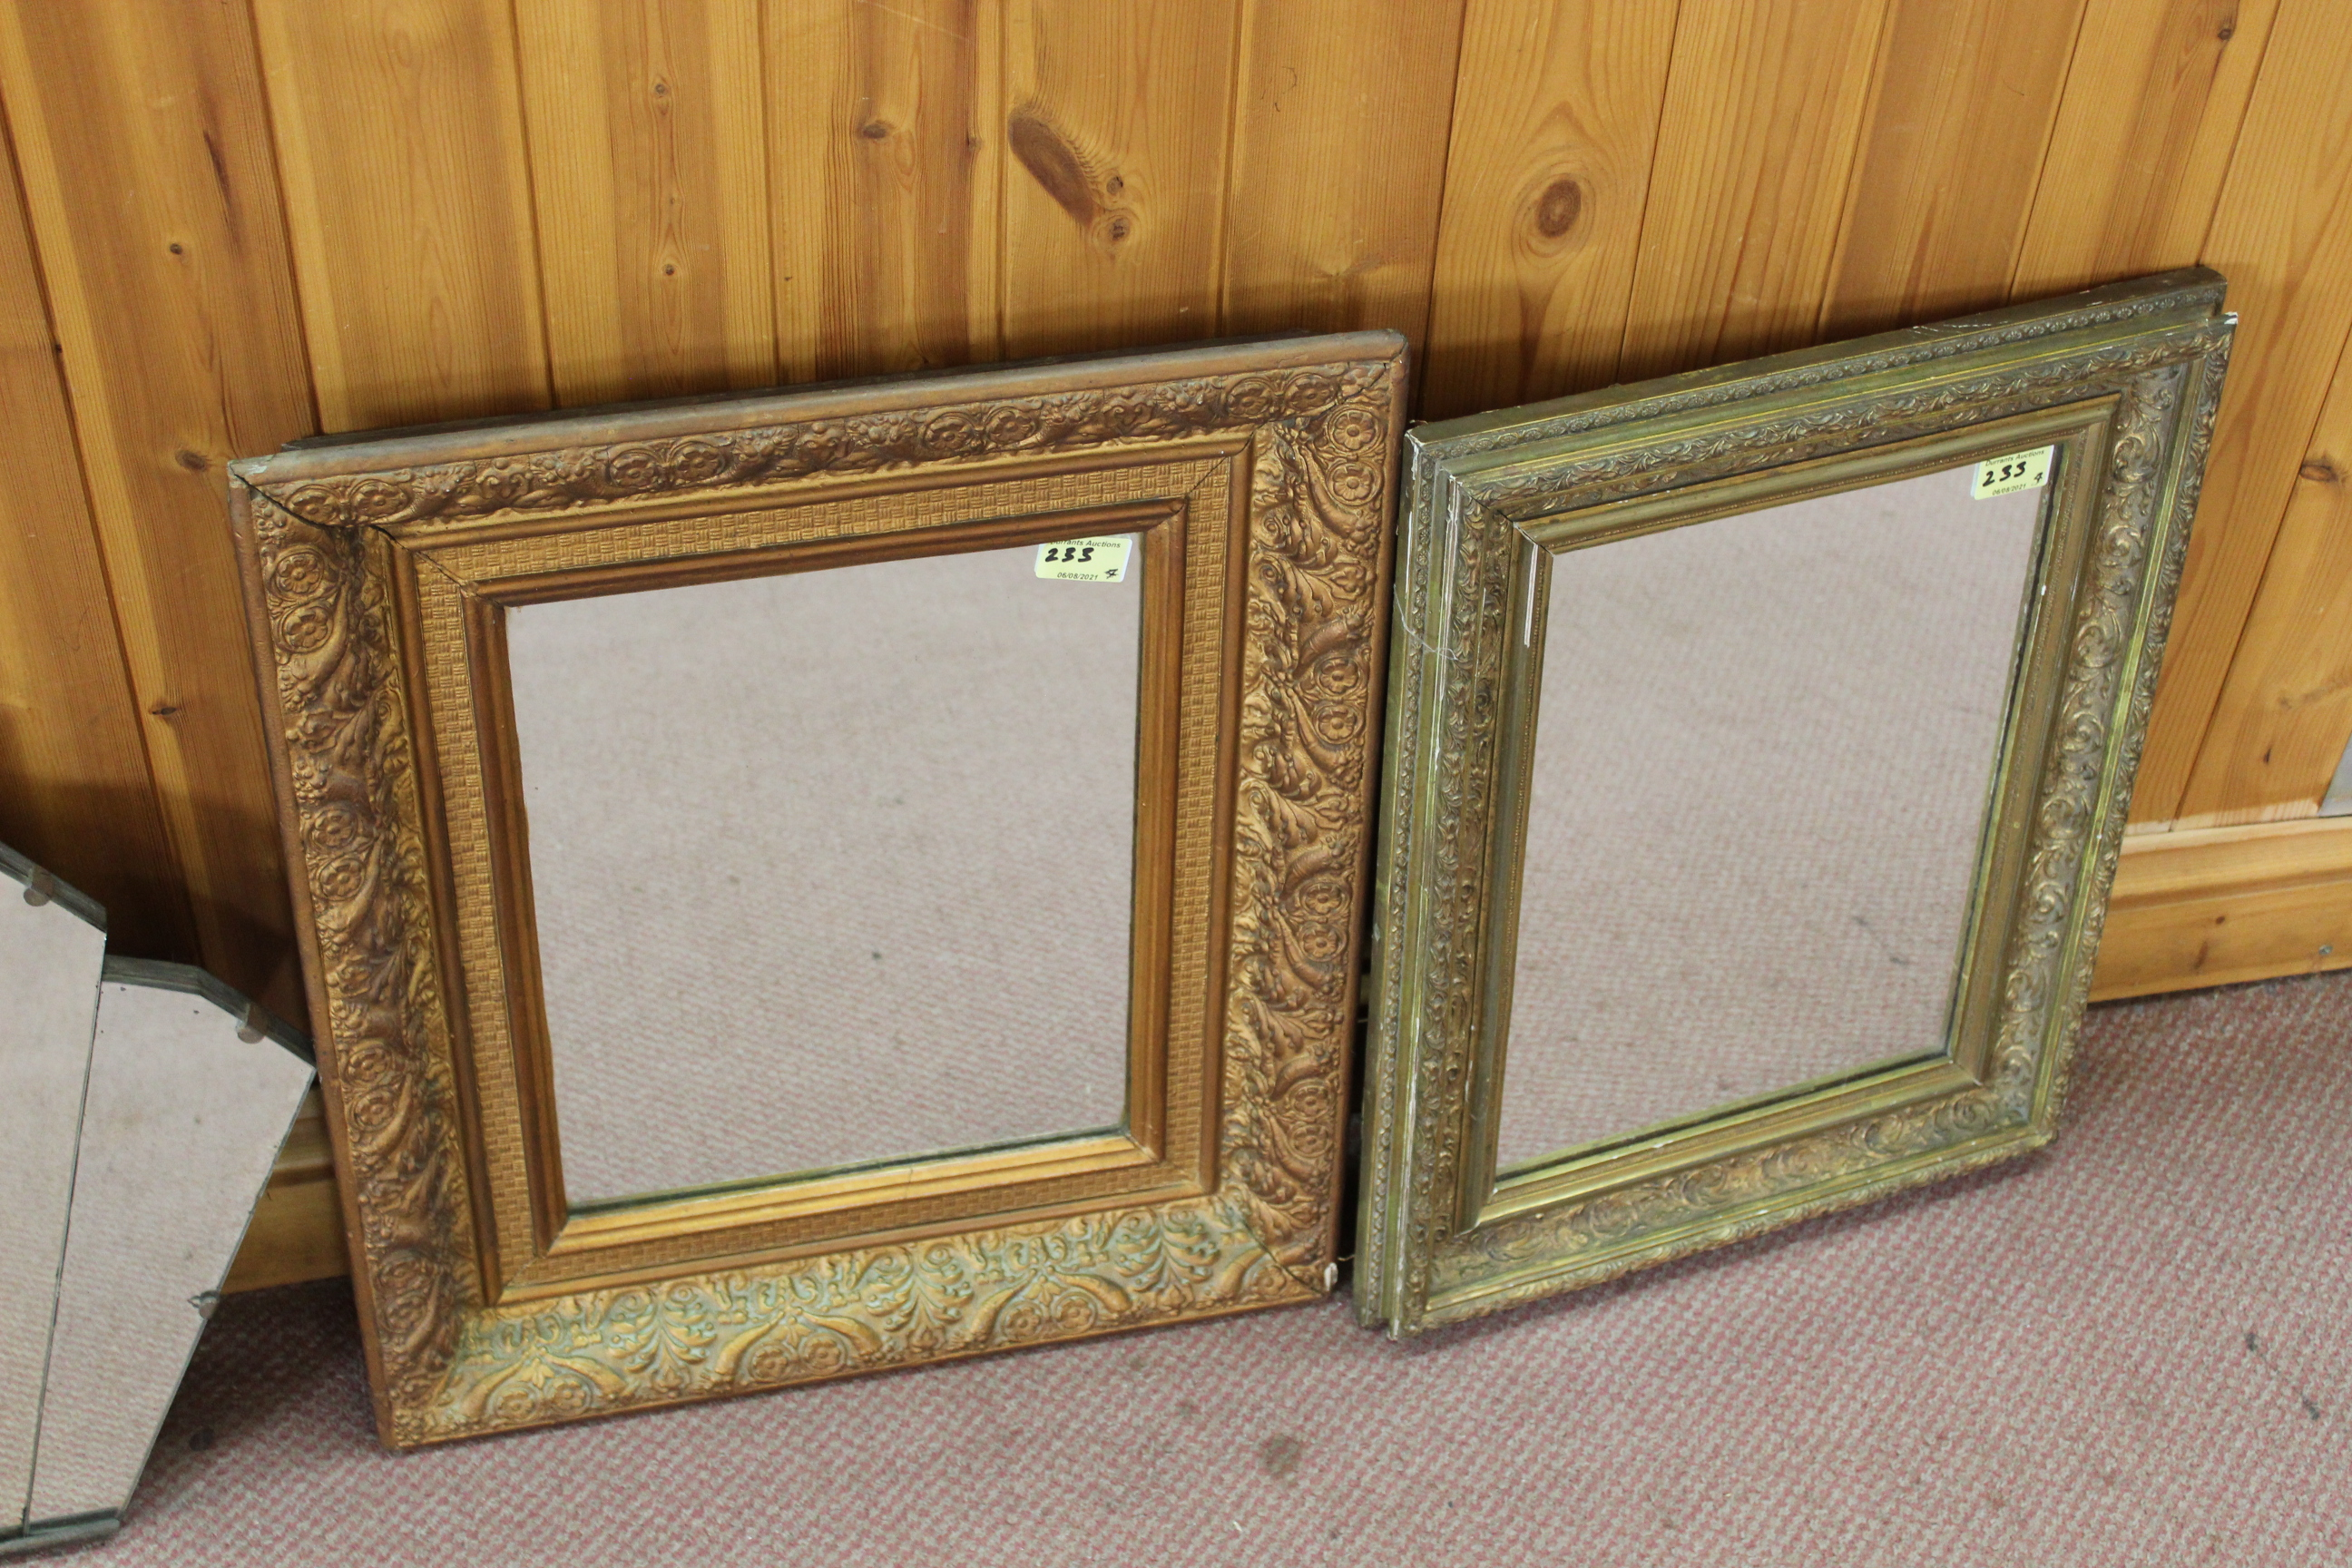 Two gilt framed mirrors, - Image 3 of 3